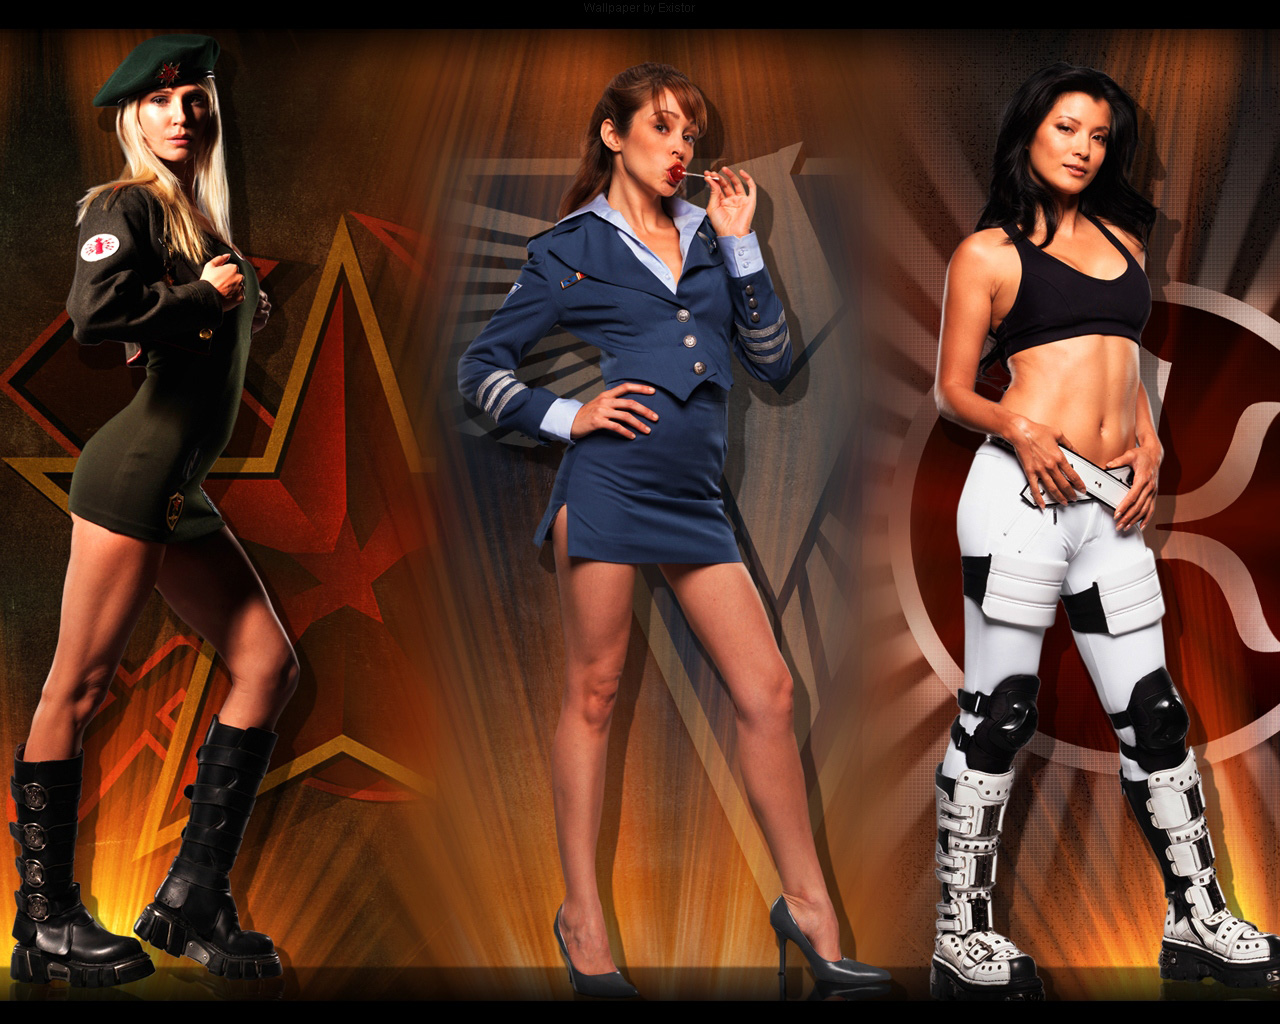 command and conquer girls ho